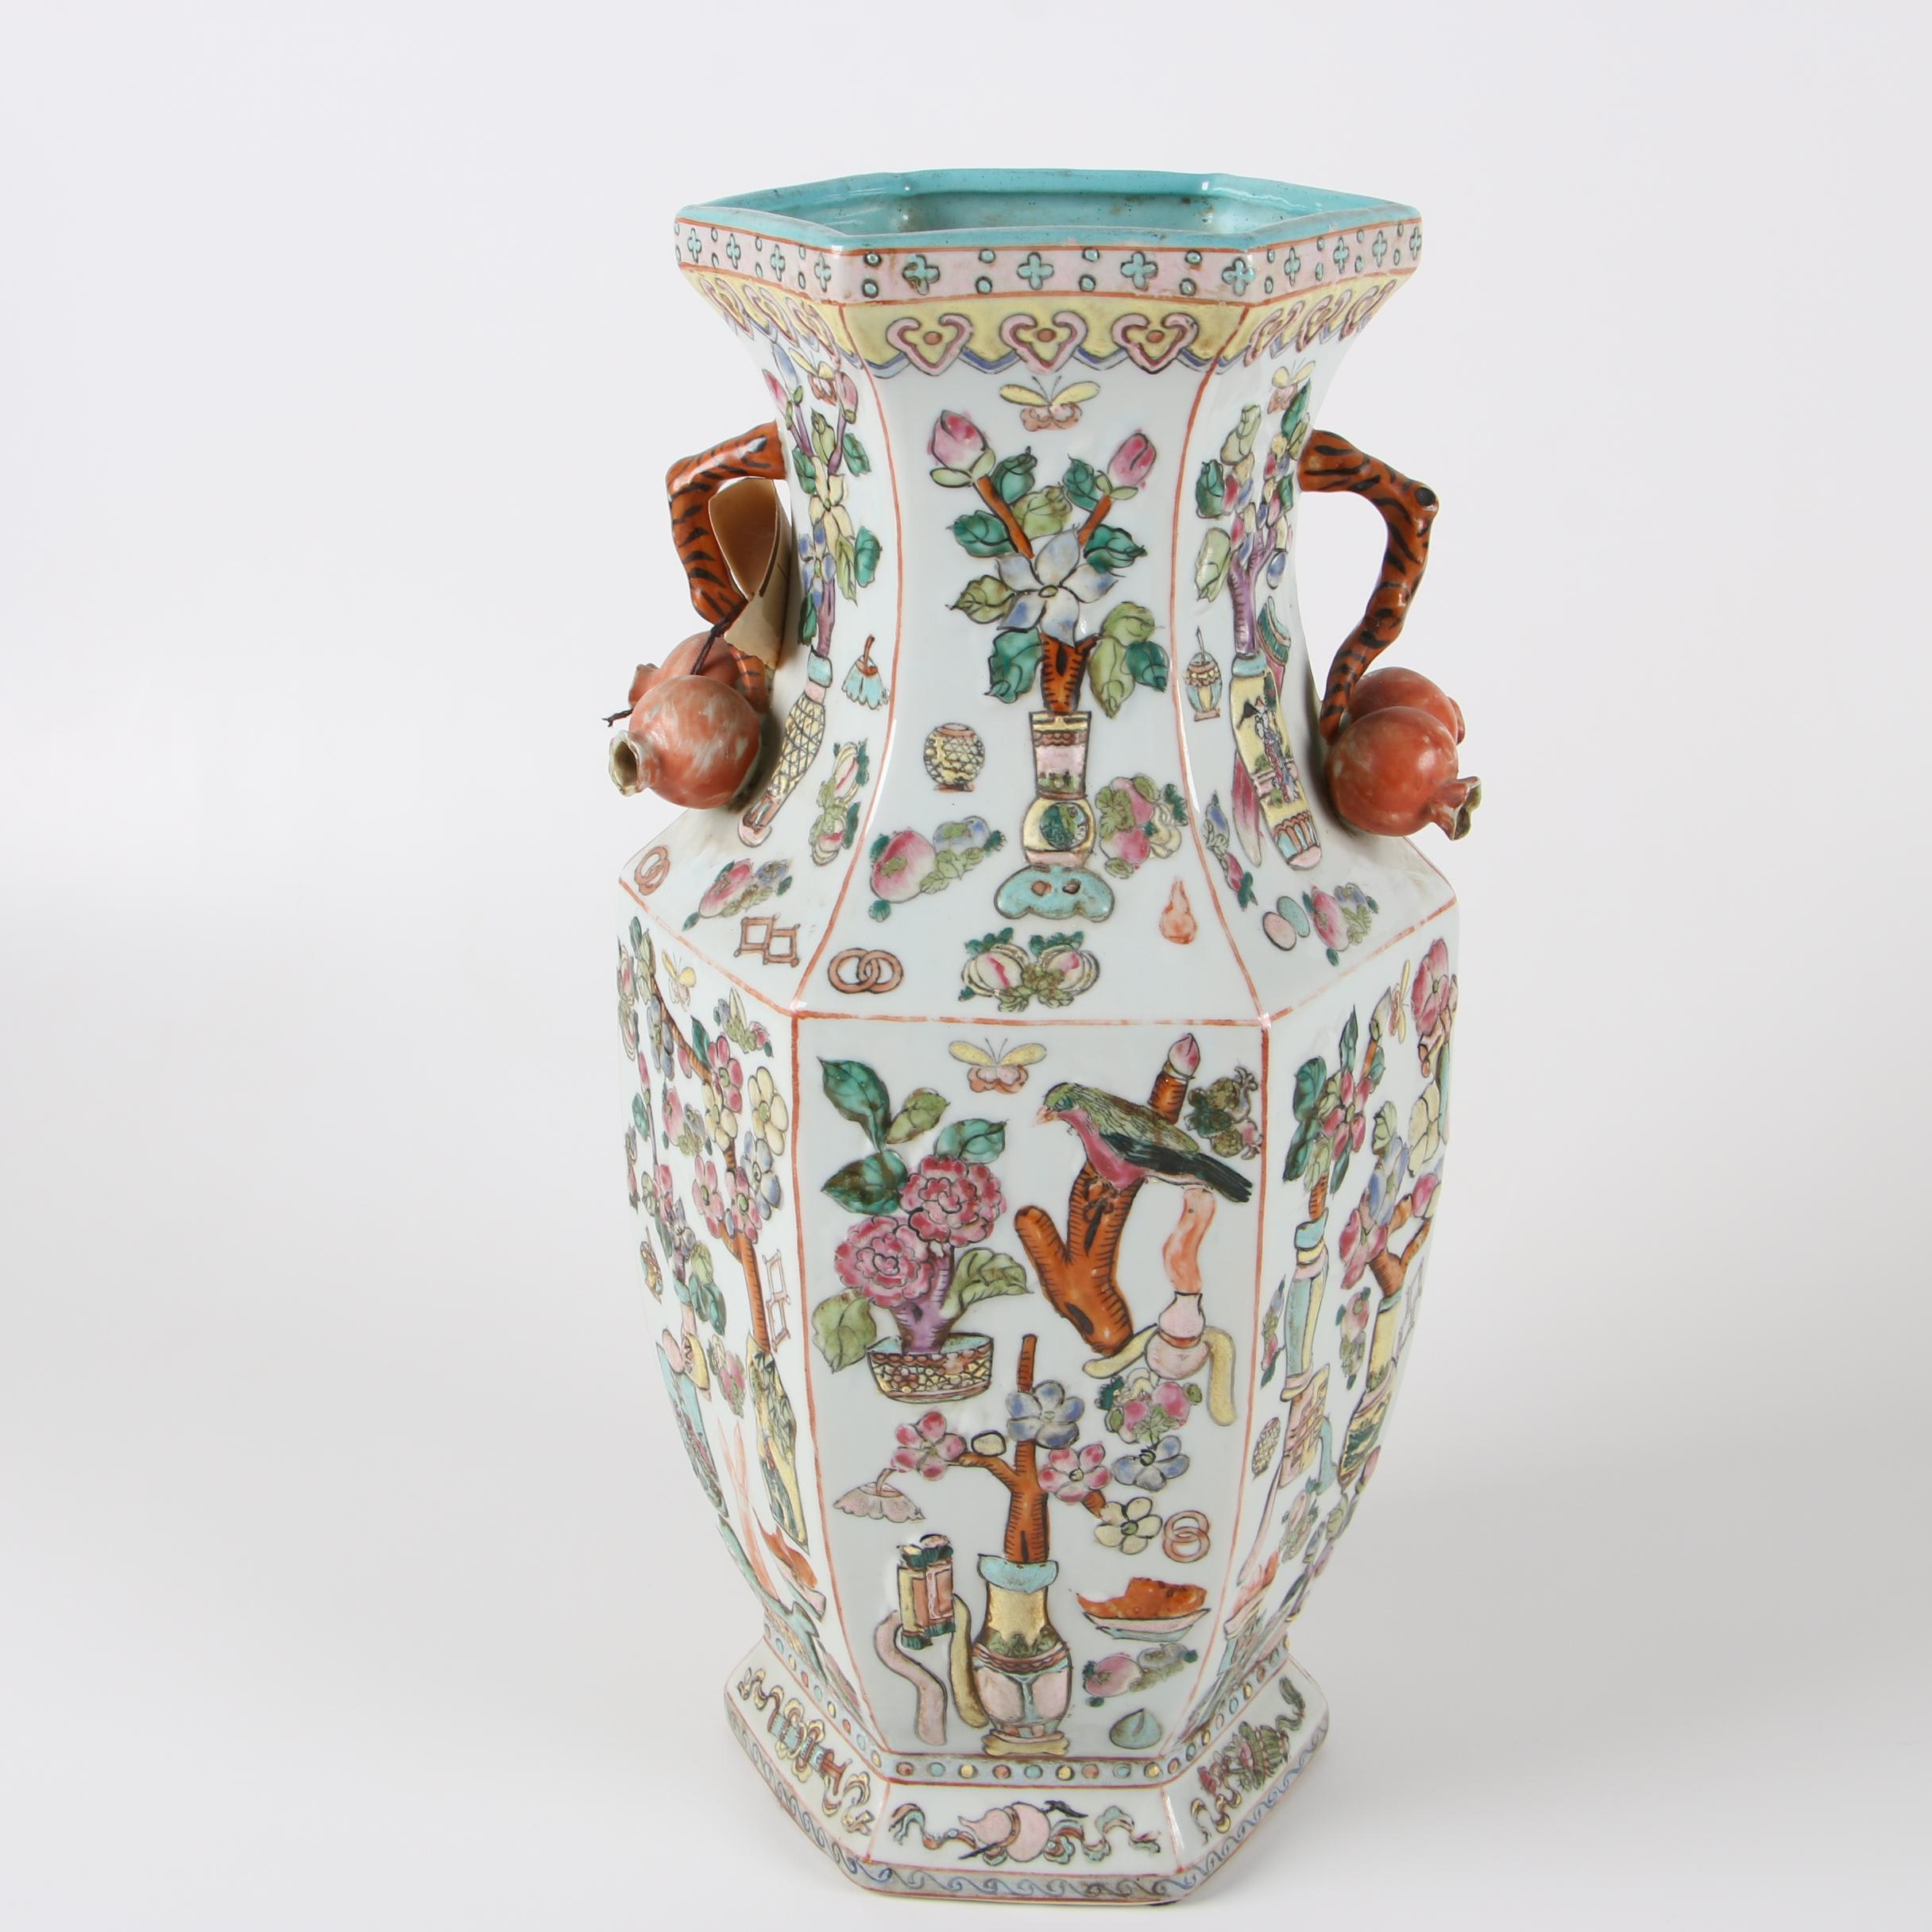 Chinese Famille Rose Ceramic Vase with Pomegranate Handles